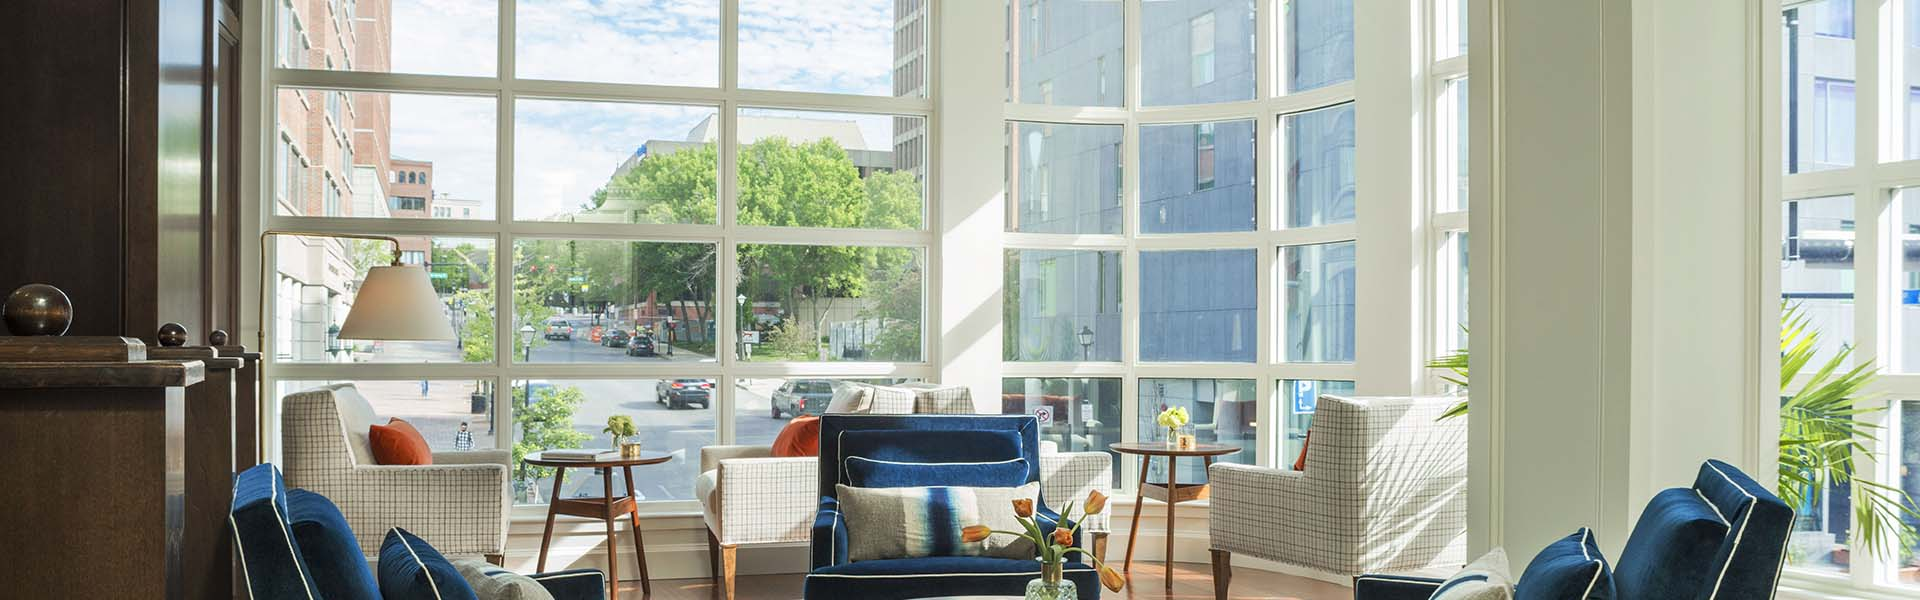 Services and Amenities | Portland Maine Hotel in Portland\'s Old Port ...